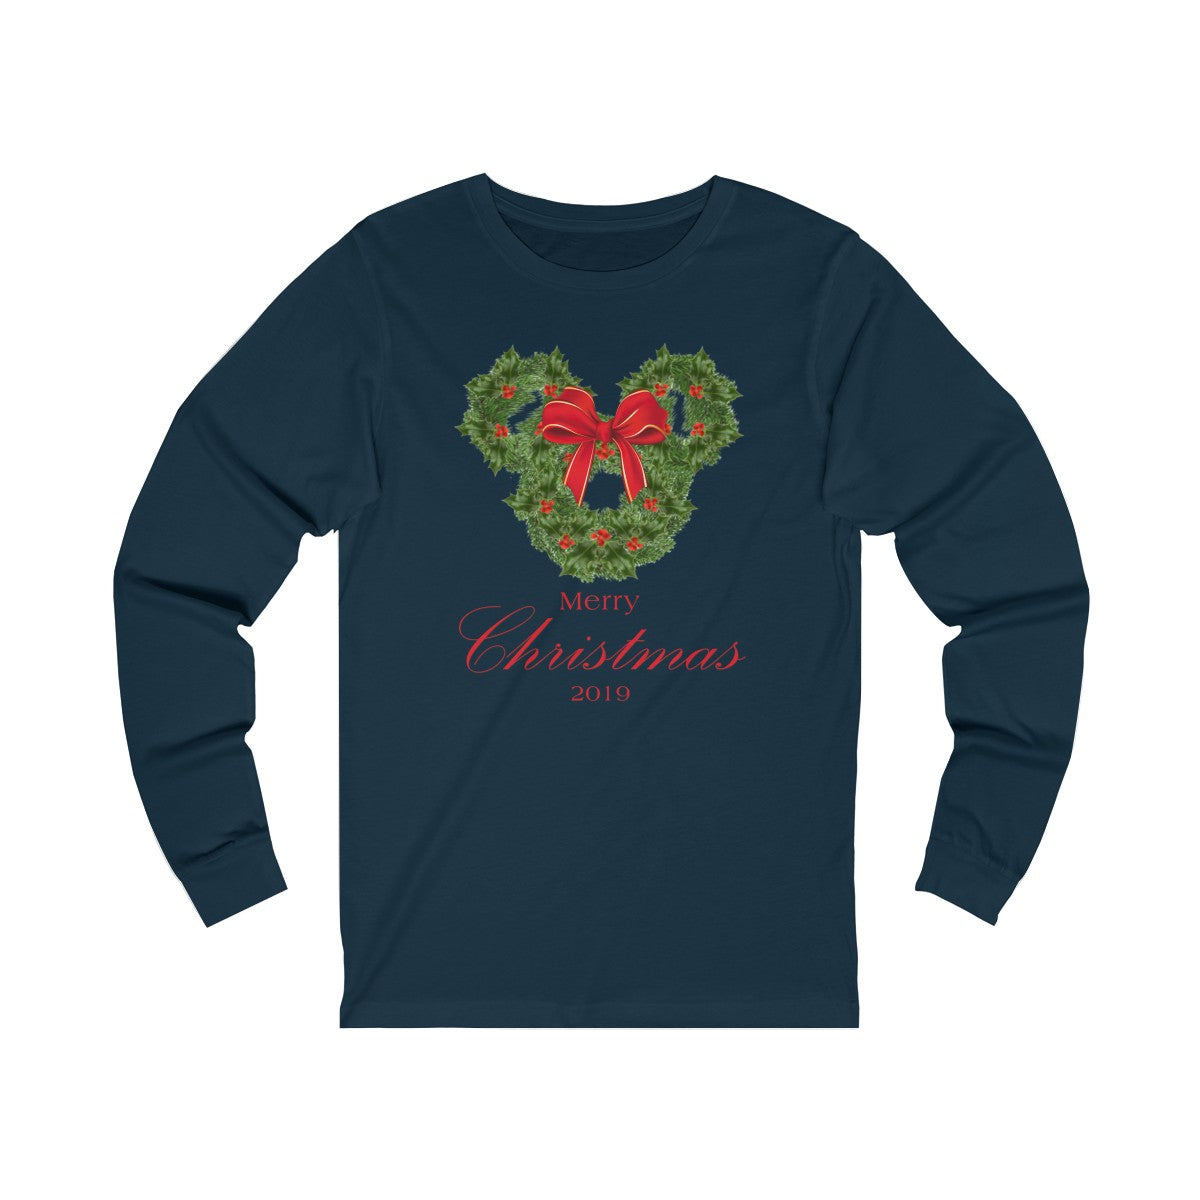 Merry Christmas Long Sleeve Tee - with Bow